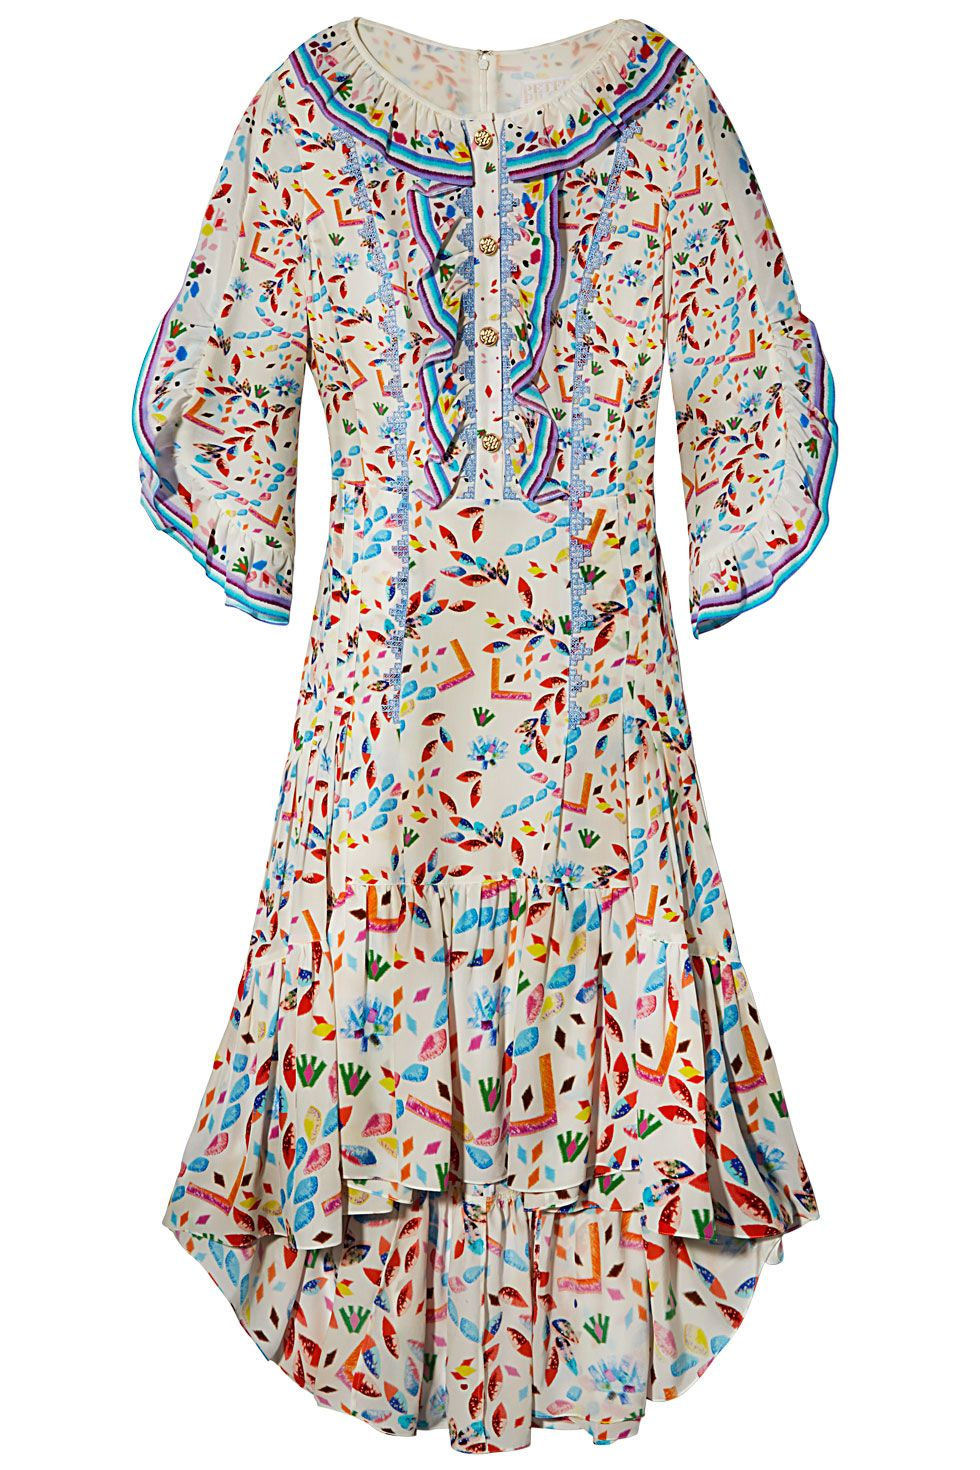 """<p><strong data-redactor-tag=""""strong"""" data-verified=""""redactor"""">Peter Pilotto </strong>dress, $2,125, <a href=""""joseph-fashion.com"""" target=""""_blank"""" data-tracking-id=""""recirc-text-link"""">joseph-fashion.com</a><a href=""""joseph-fashion.com"""">ion.com</a>.</p>"""